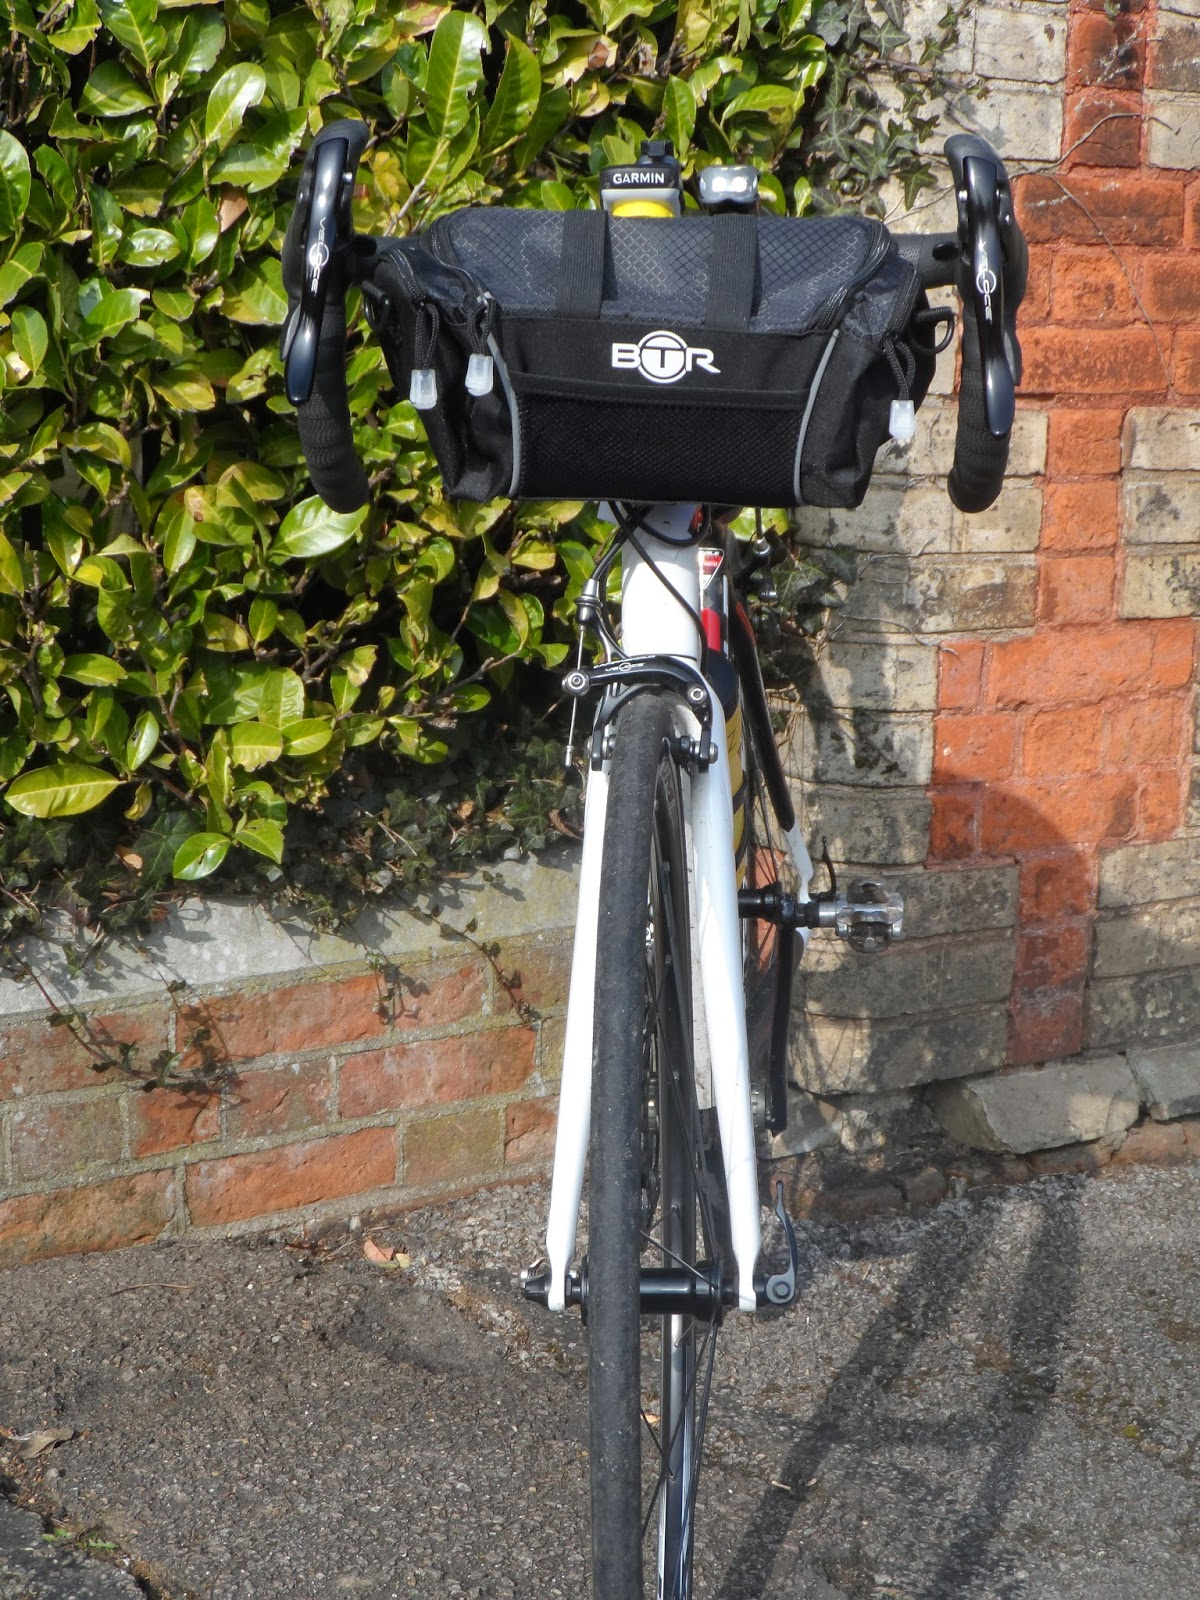 Btr Bag Sits Nicely On The Ribble Road Bike With Campagnolo Gear System And I Had No Problem Brake Levers